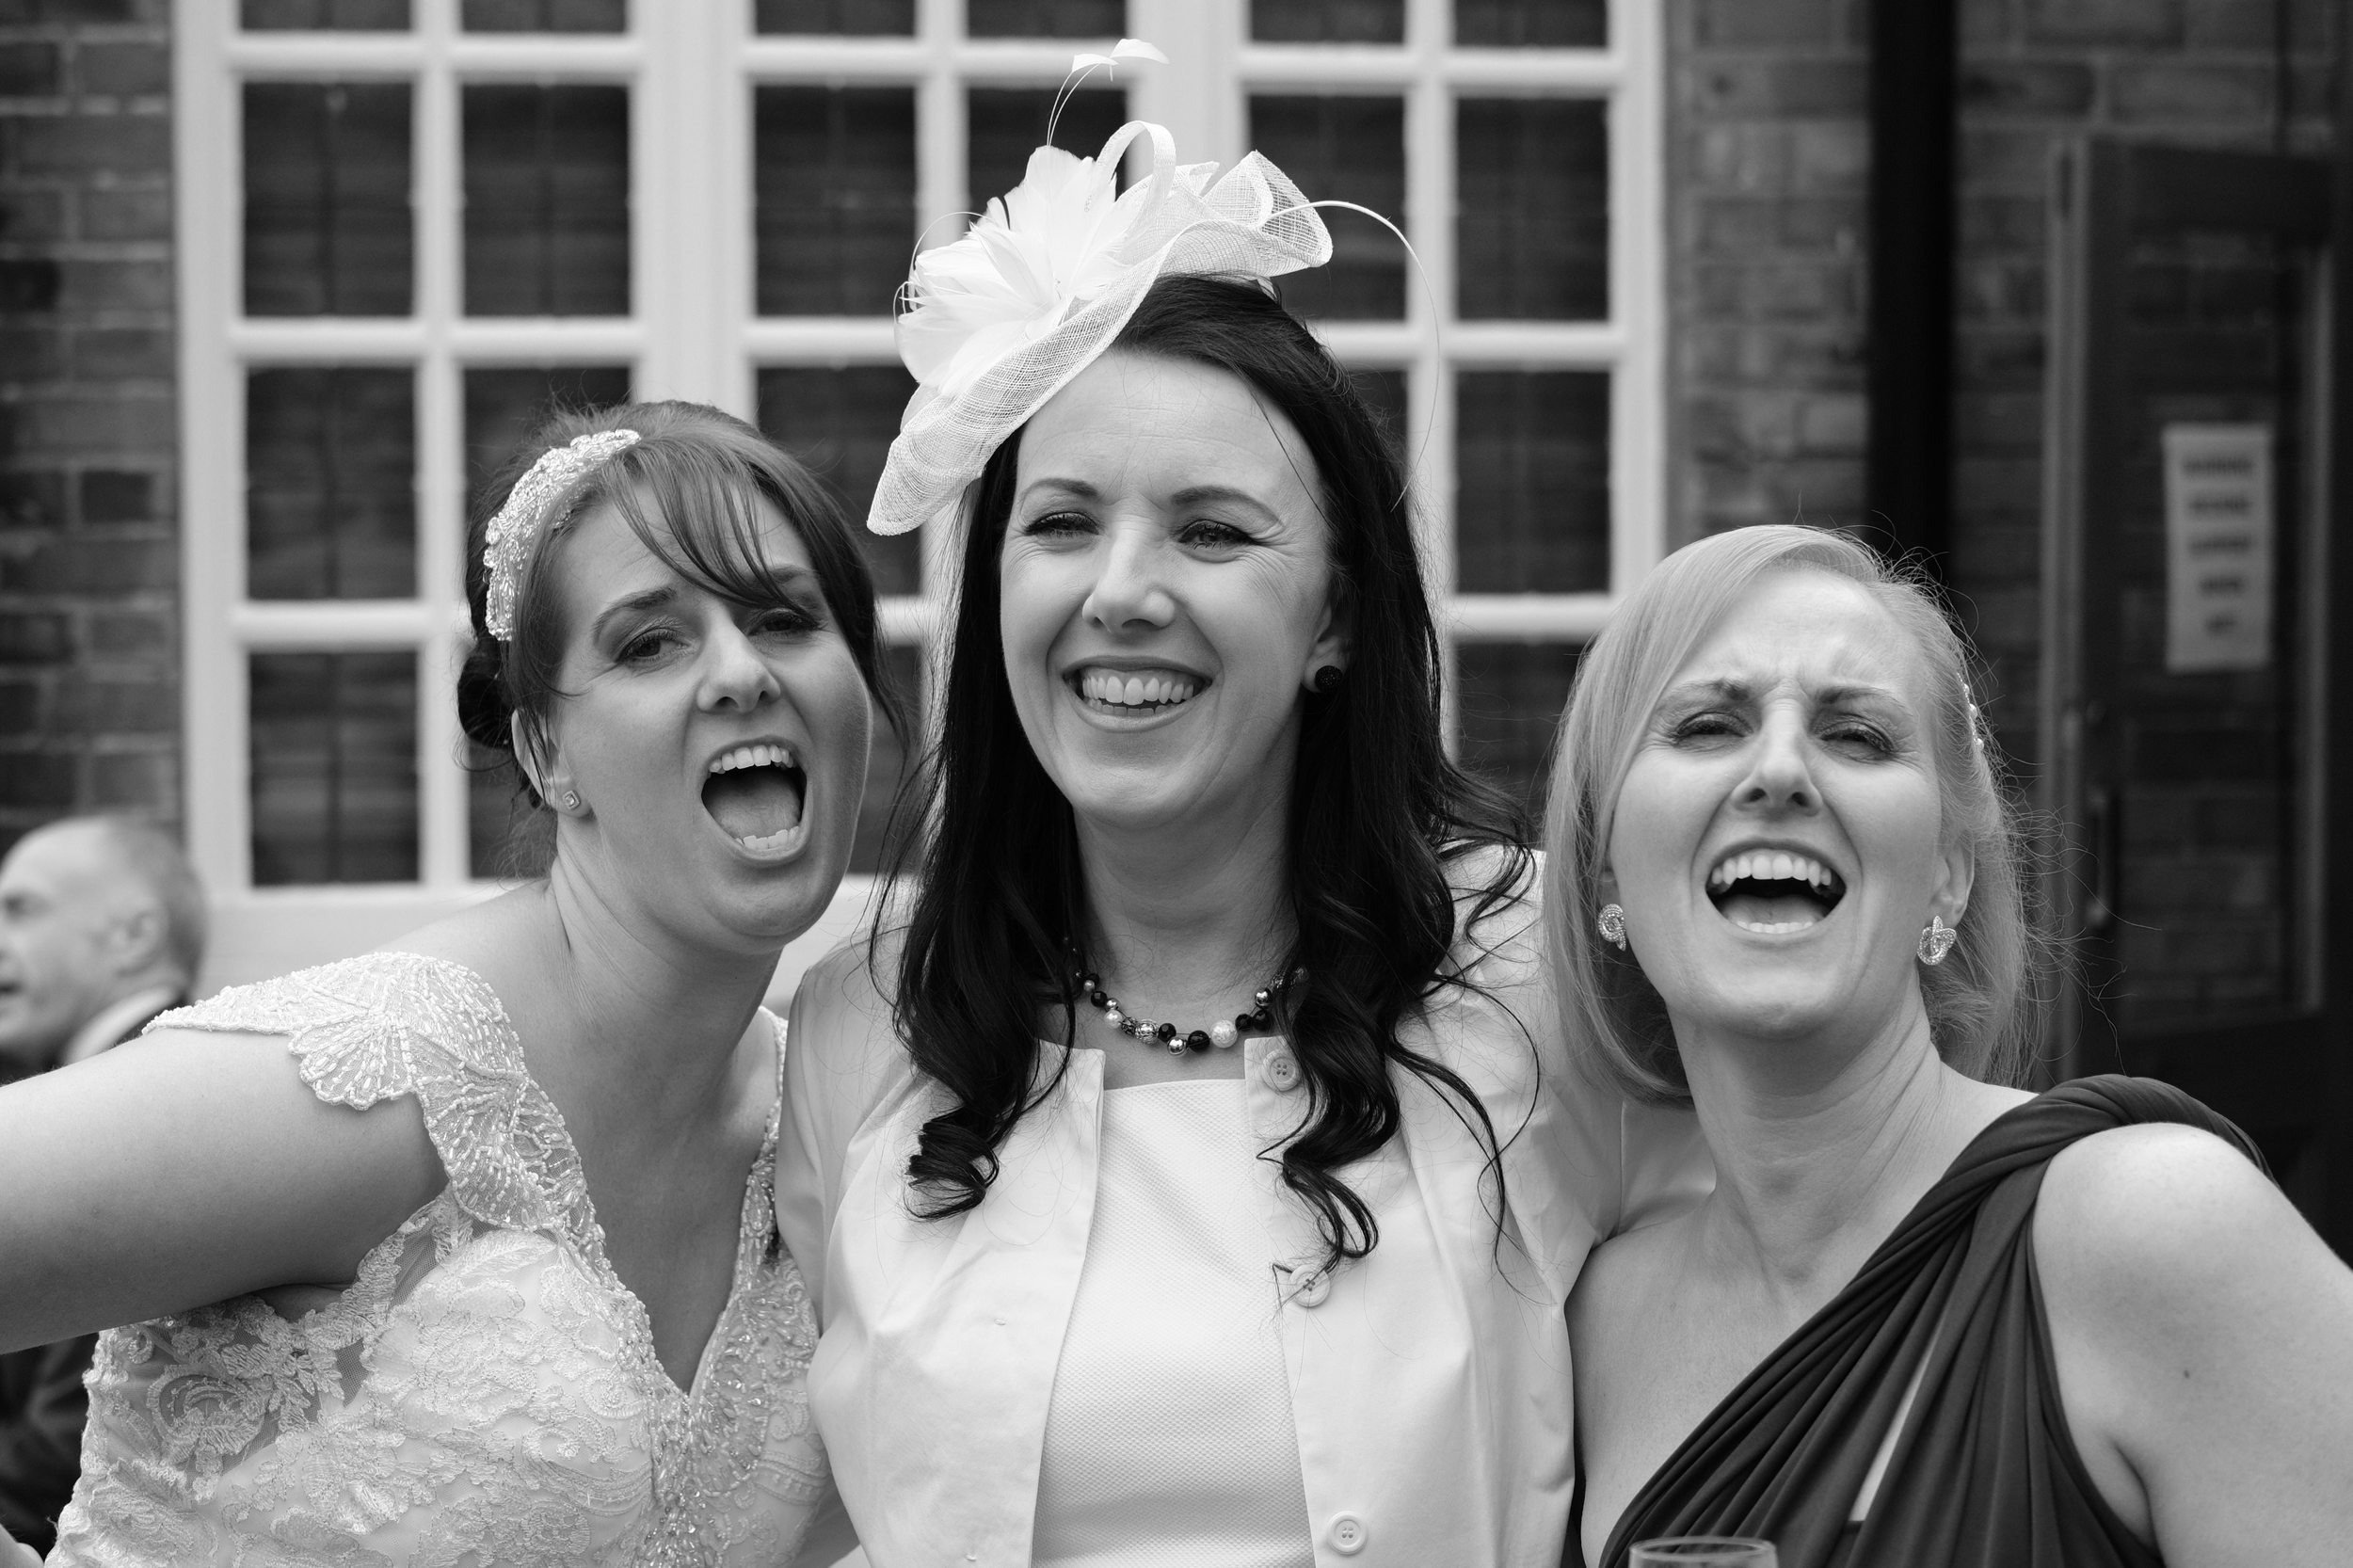 Newcastle Wedding Photographer // Bride posing with girlfriends